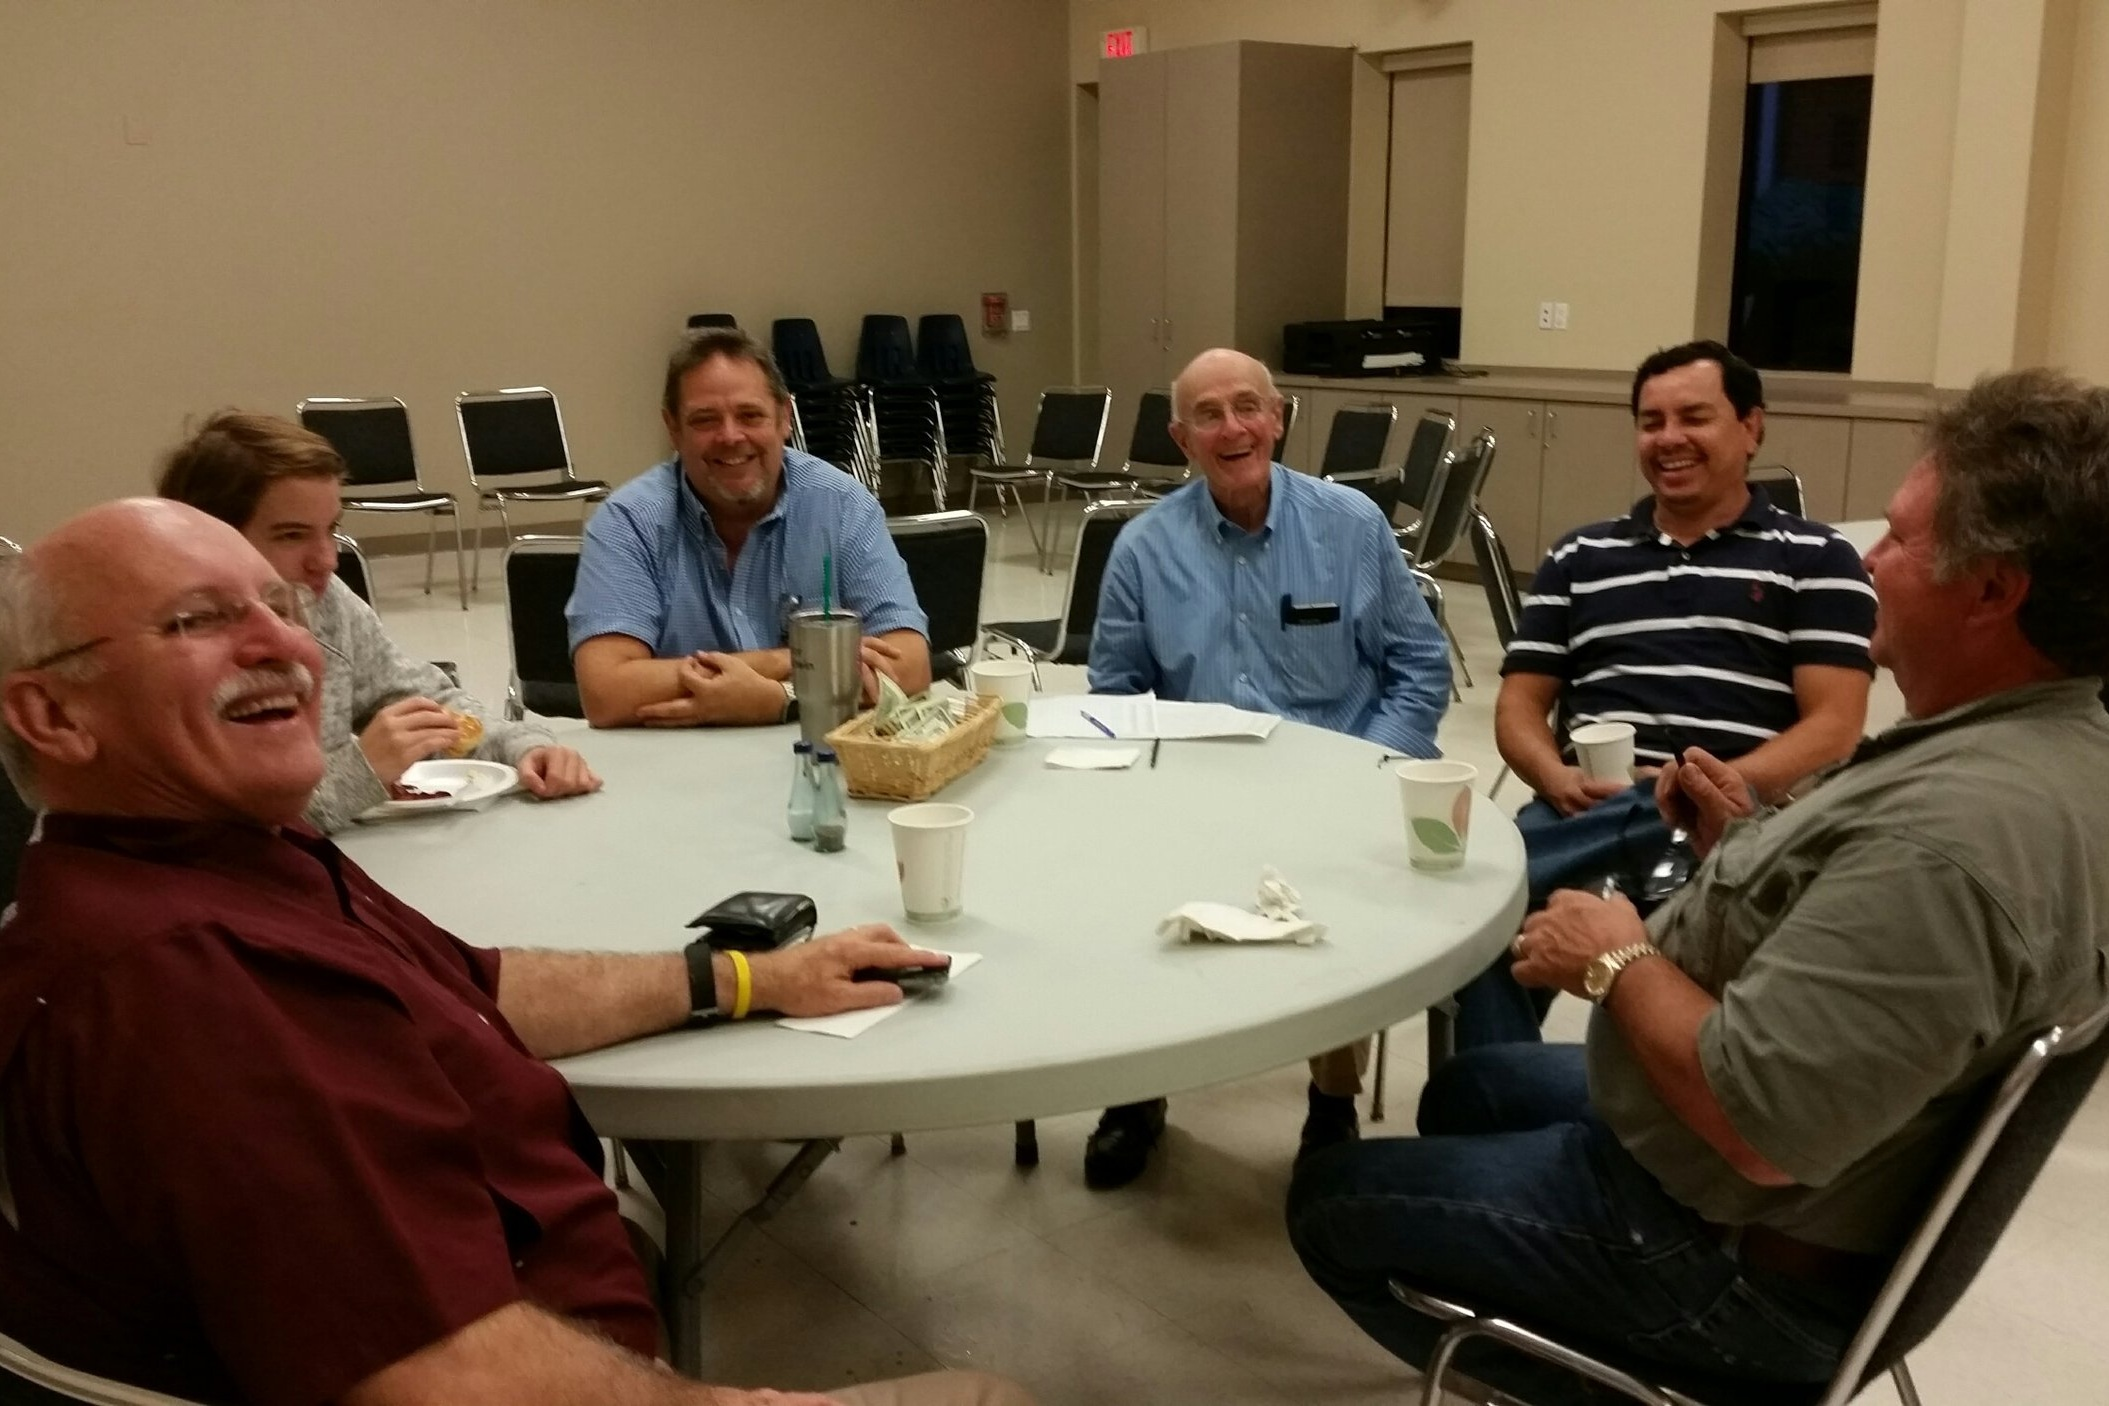 Men's Breakfast - Men gather every Wednesday morning at 6:30am in the Drummet Building adjacent to the back parking lot for a hearty breakfast, fellowship, and an engaging Bible study.